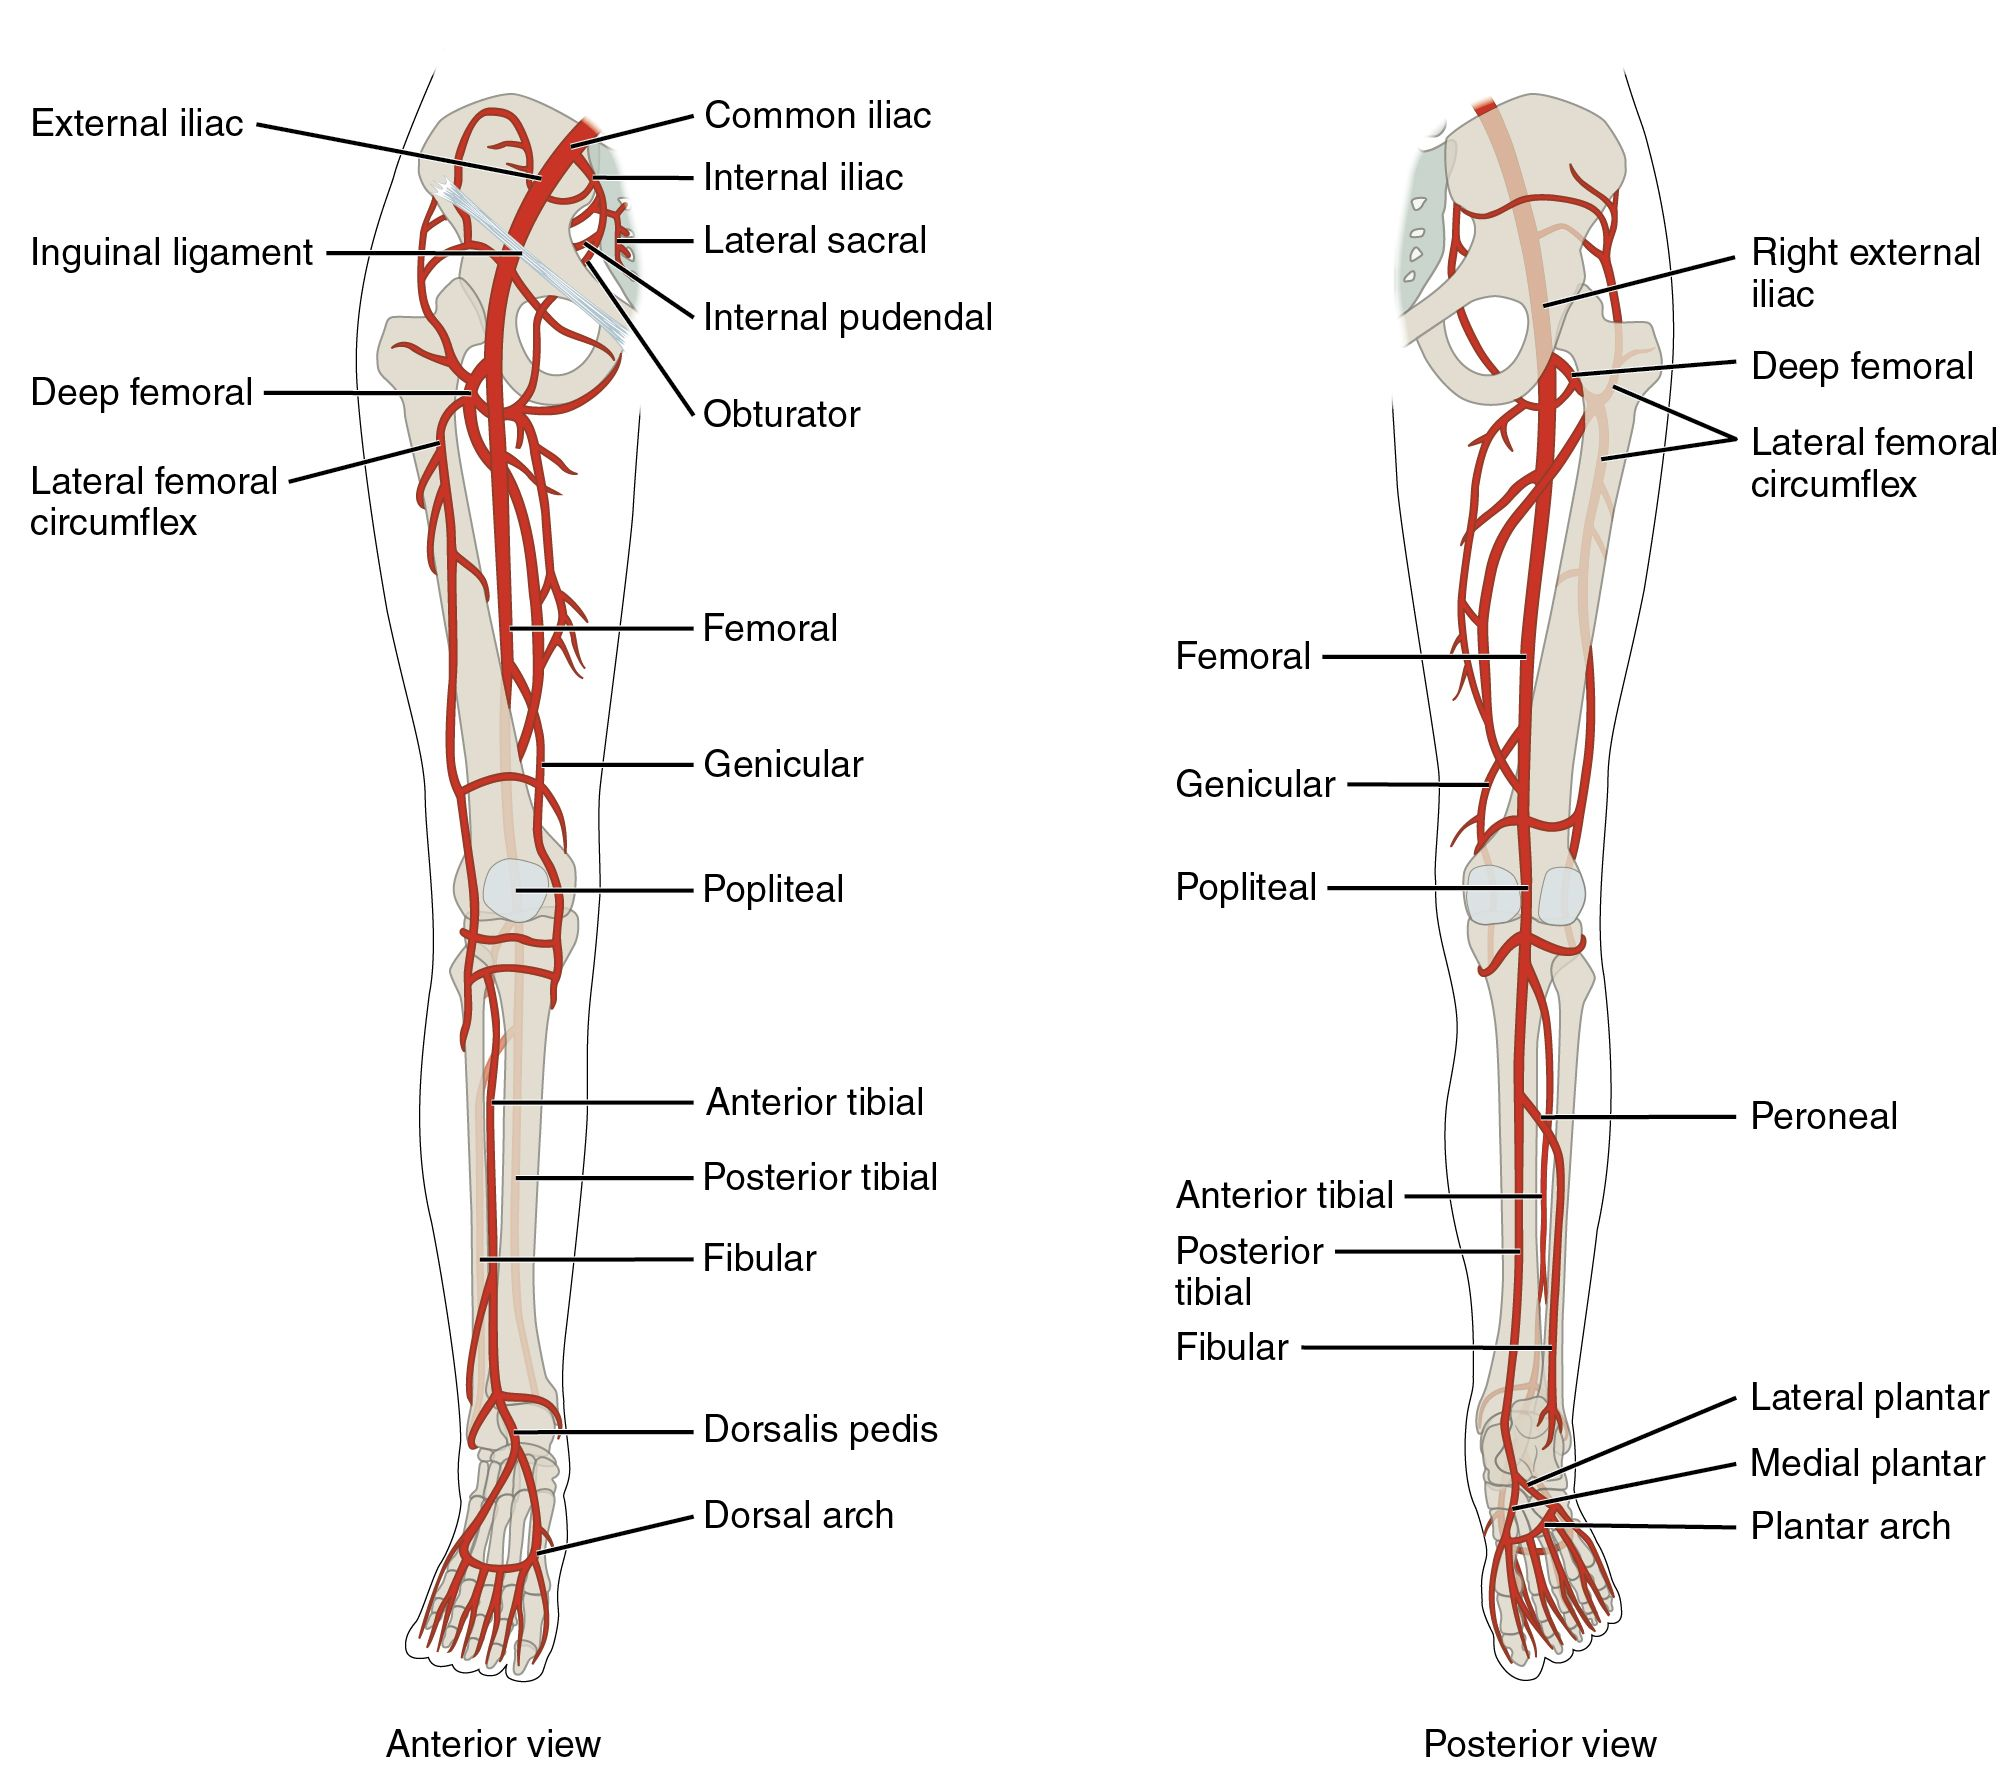 of arteries in the <b>legs</b>, and the right panel shows the ...